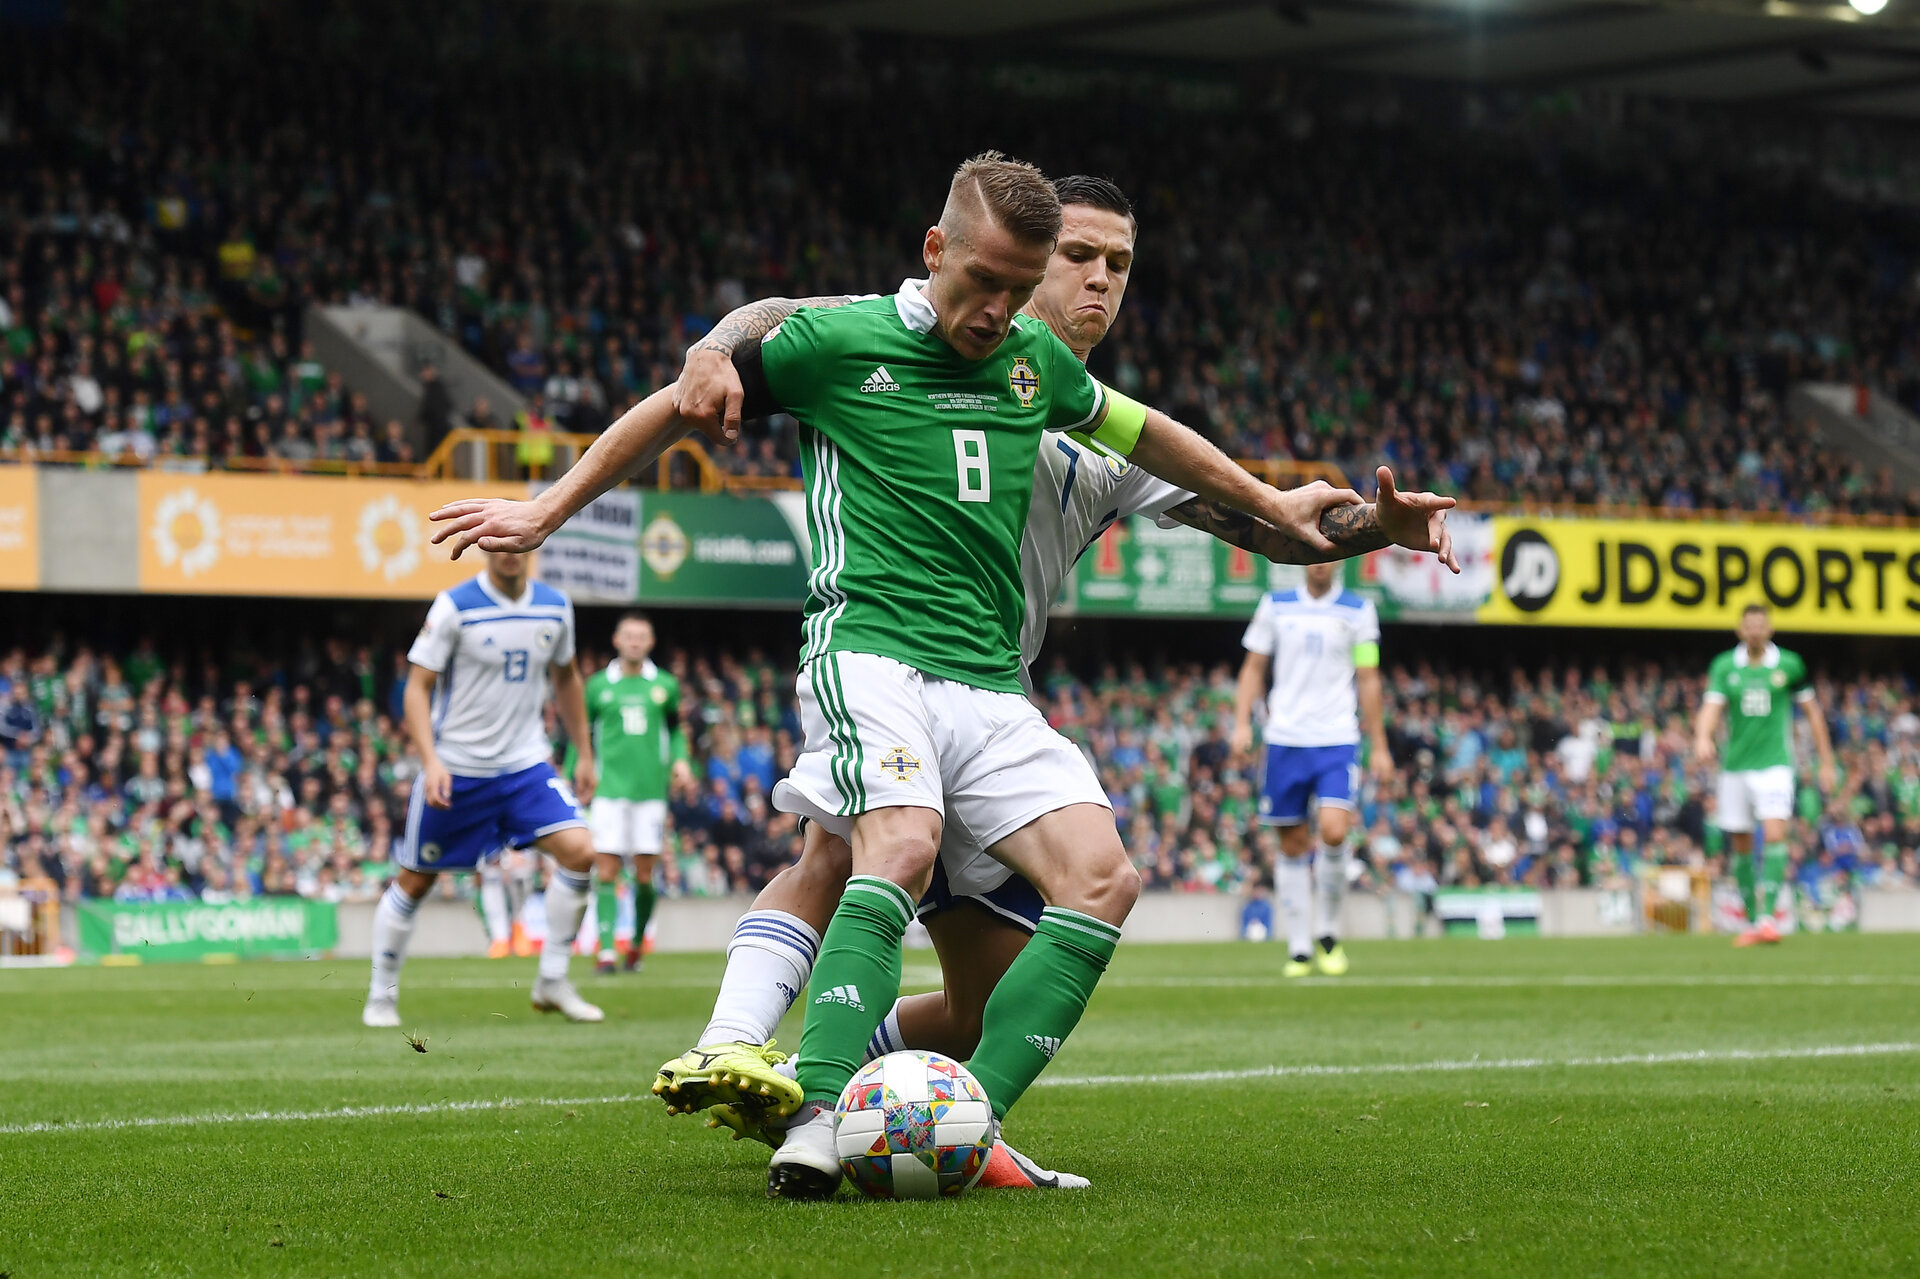 BELFAST, NORTHERN IRELAND - SEPTEMBER 08: Steve Davis of Northern Ireland and Muhamed Besic of Bosnia-Herzegovina during the UEFA Nations League B group three match between Northern Ireland and Bosnia-Herzegovina at Windsor Park on September 8, 2018 in Belfast, Northern Ireland. (Photo by Charles McQuillan/Getty Images)